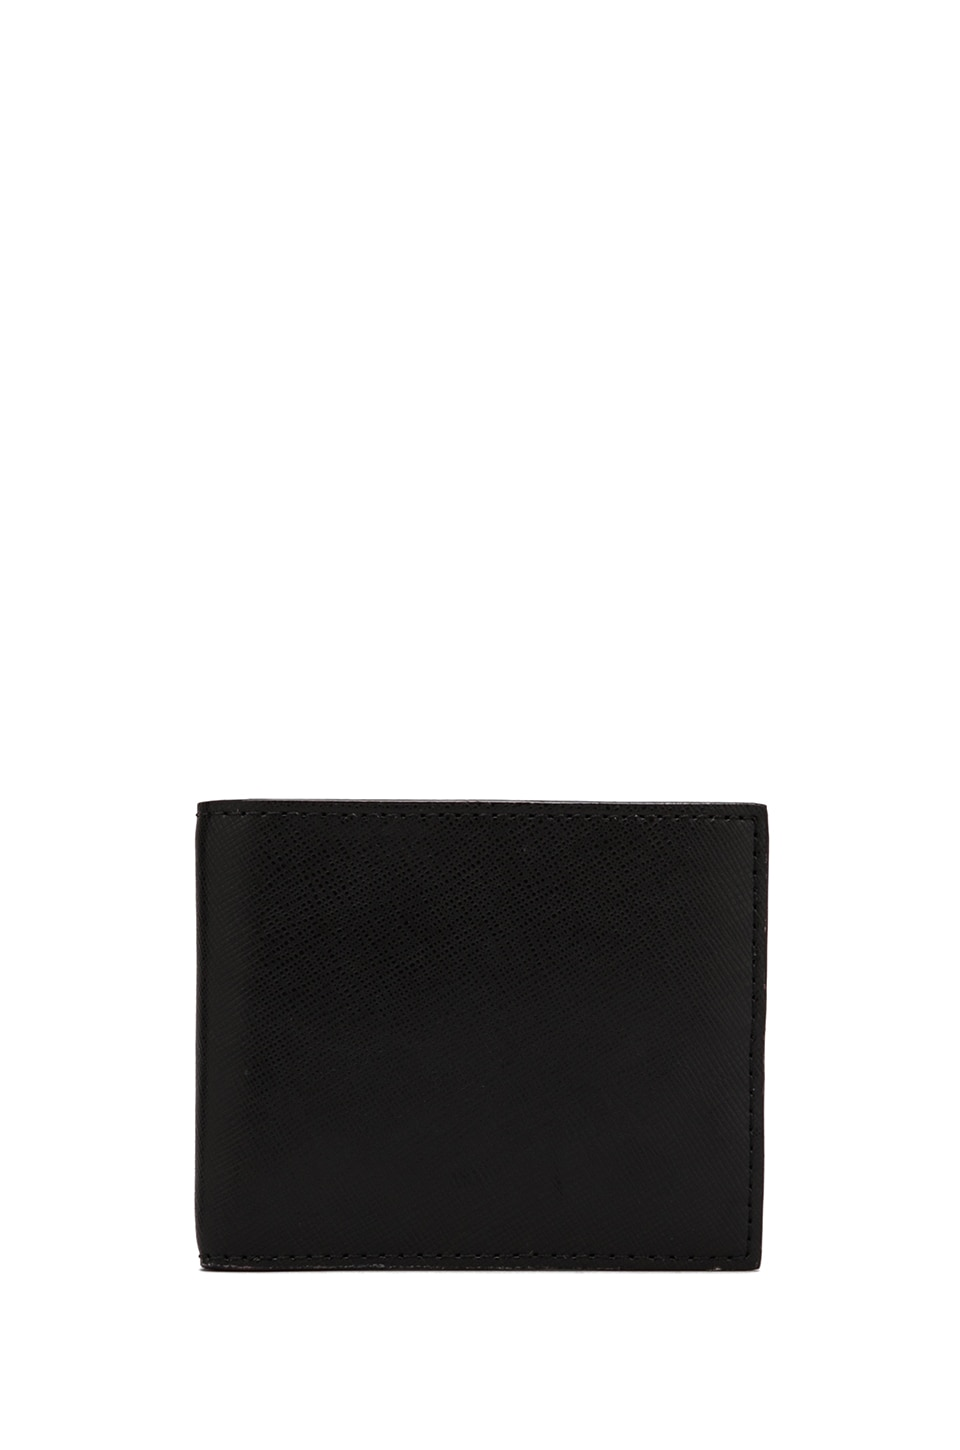 Jack Spade Wesson Leather Bill Holder Wallet in Black